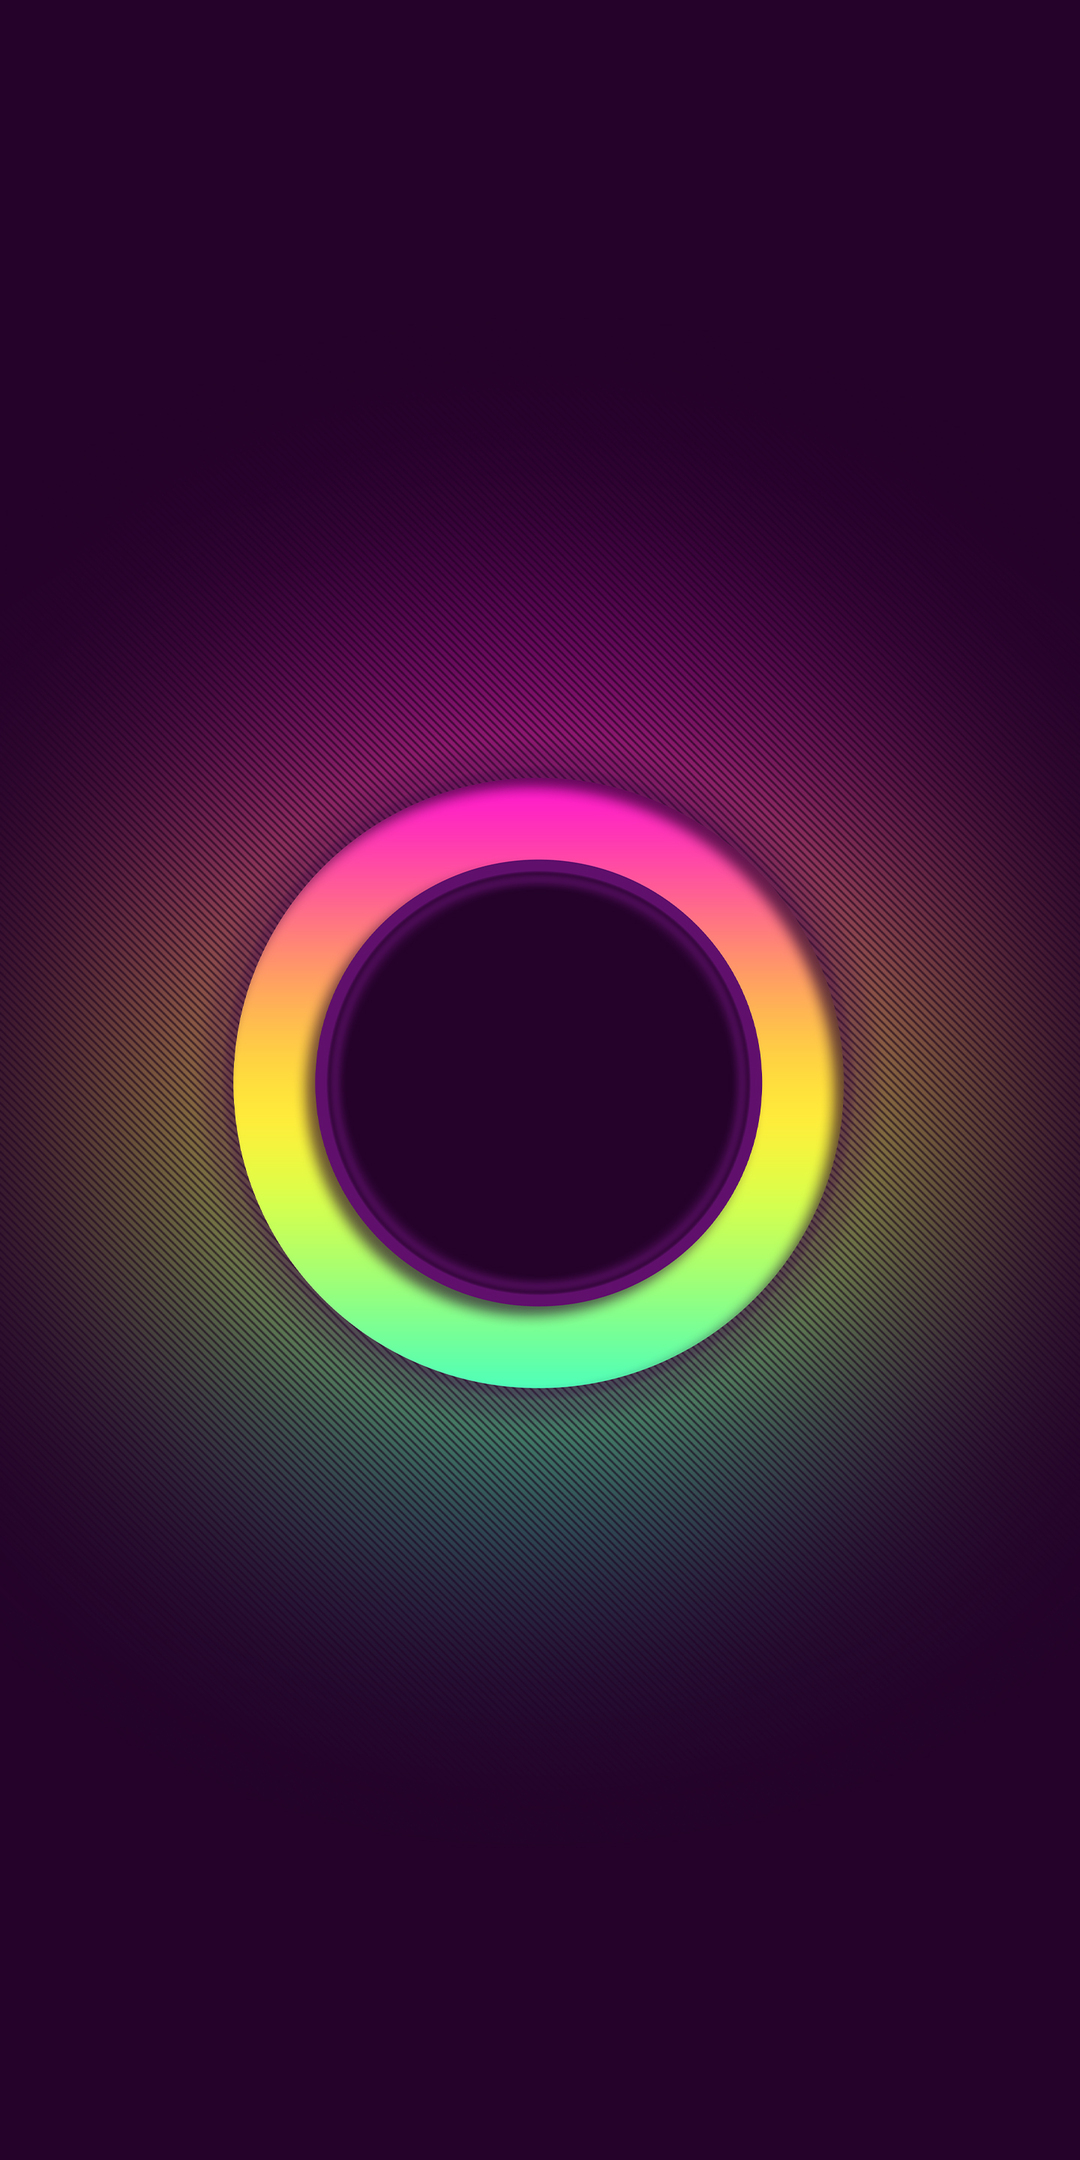 glowing-circle-abstract-4k-97.jpg